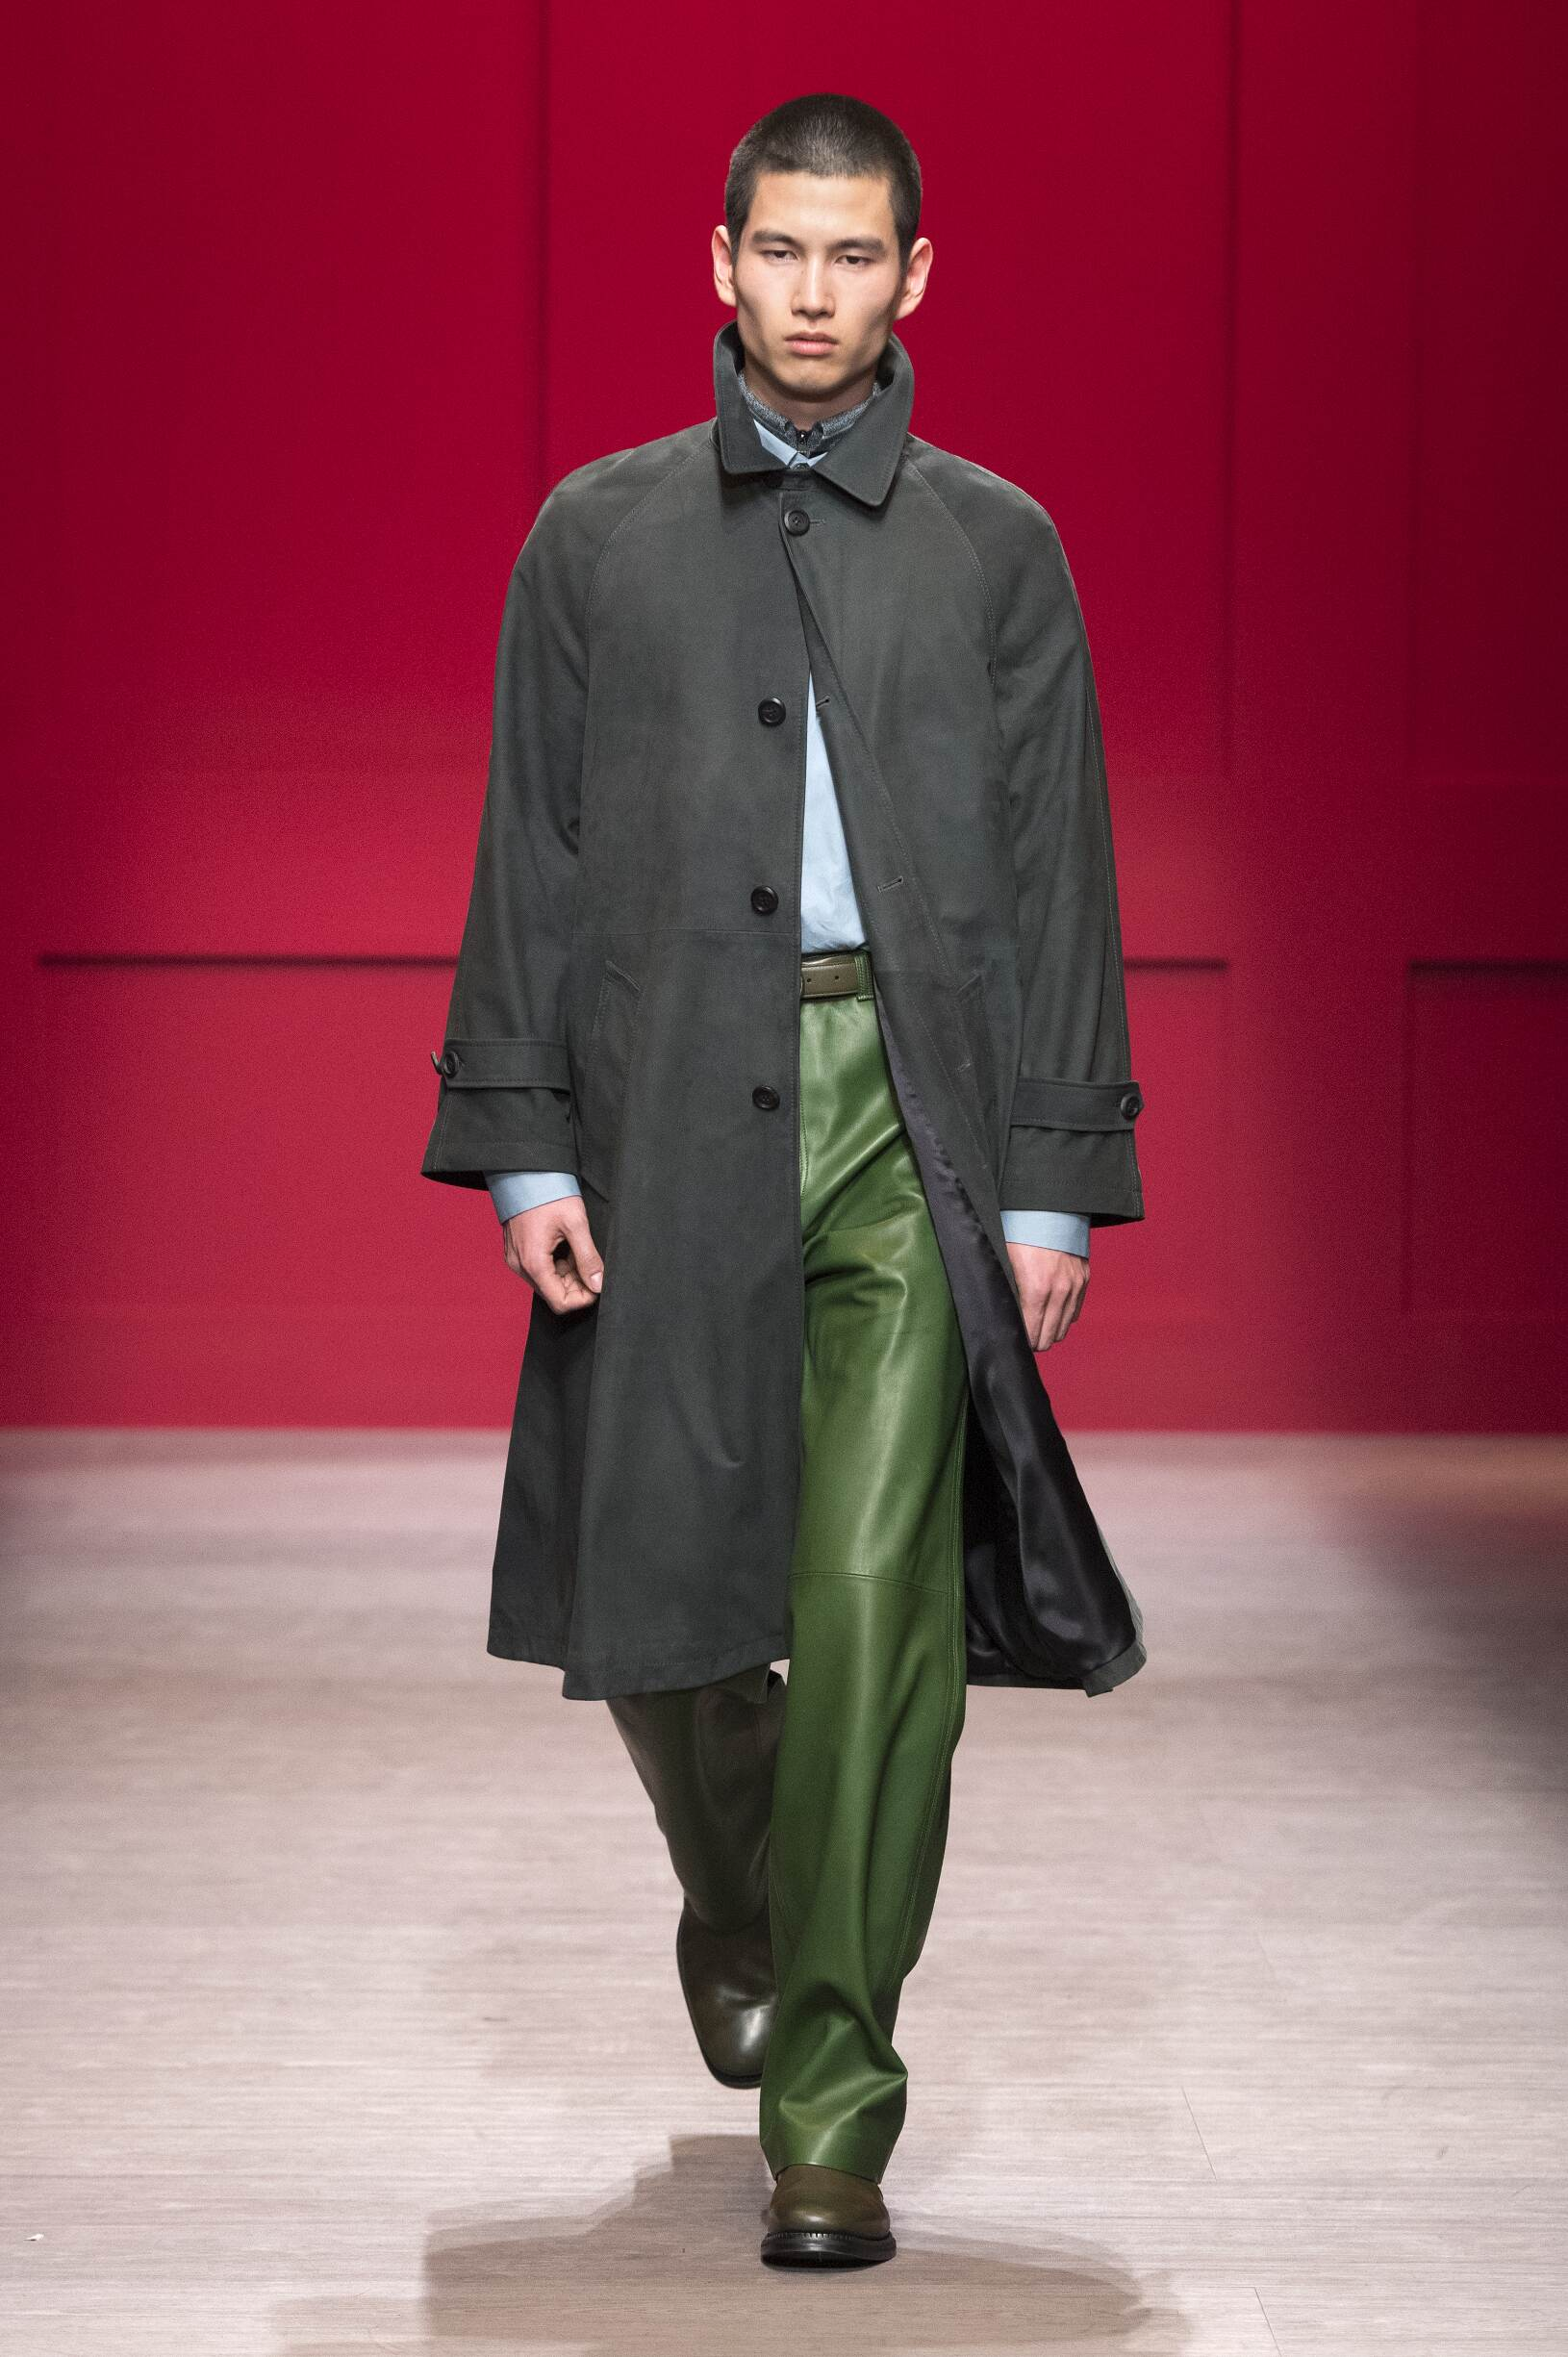 Man FW 2018-19 Fashion Show Salvatore Ferragamo